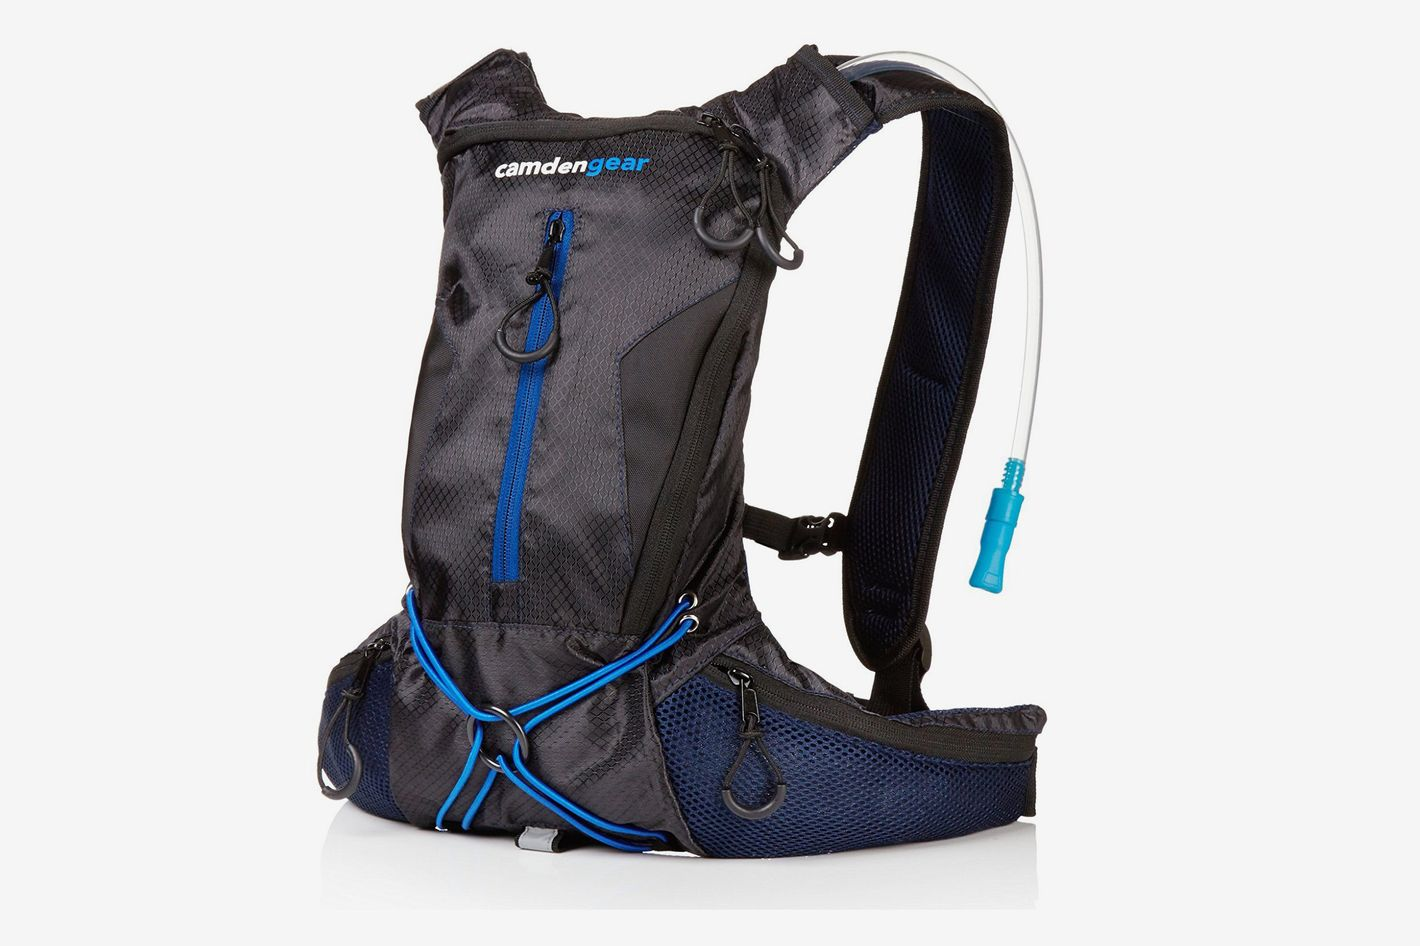 ac1b6159a2c0 5 Best Running Backpacks and Hydration Packs 2018